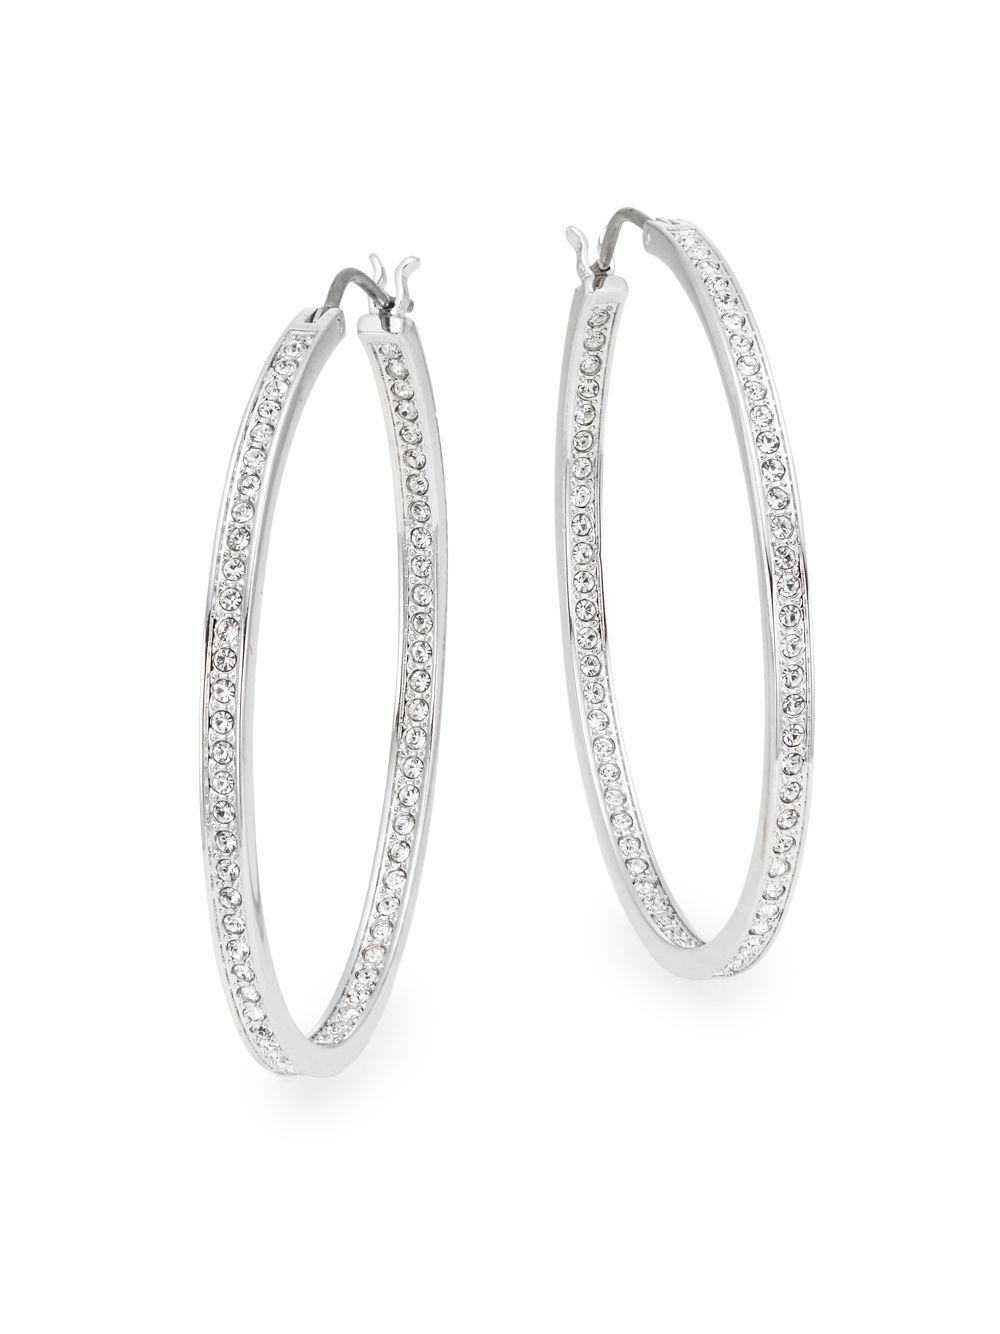 393b92a34c1e Lyst - Swarovski Ready Crystal Oval Hoop Earrings in Metallic